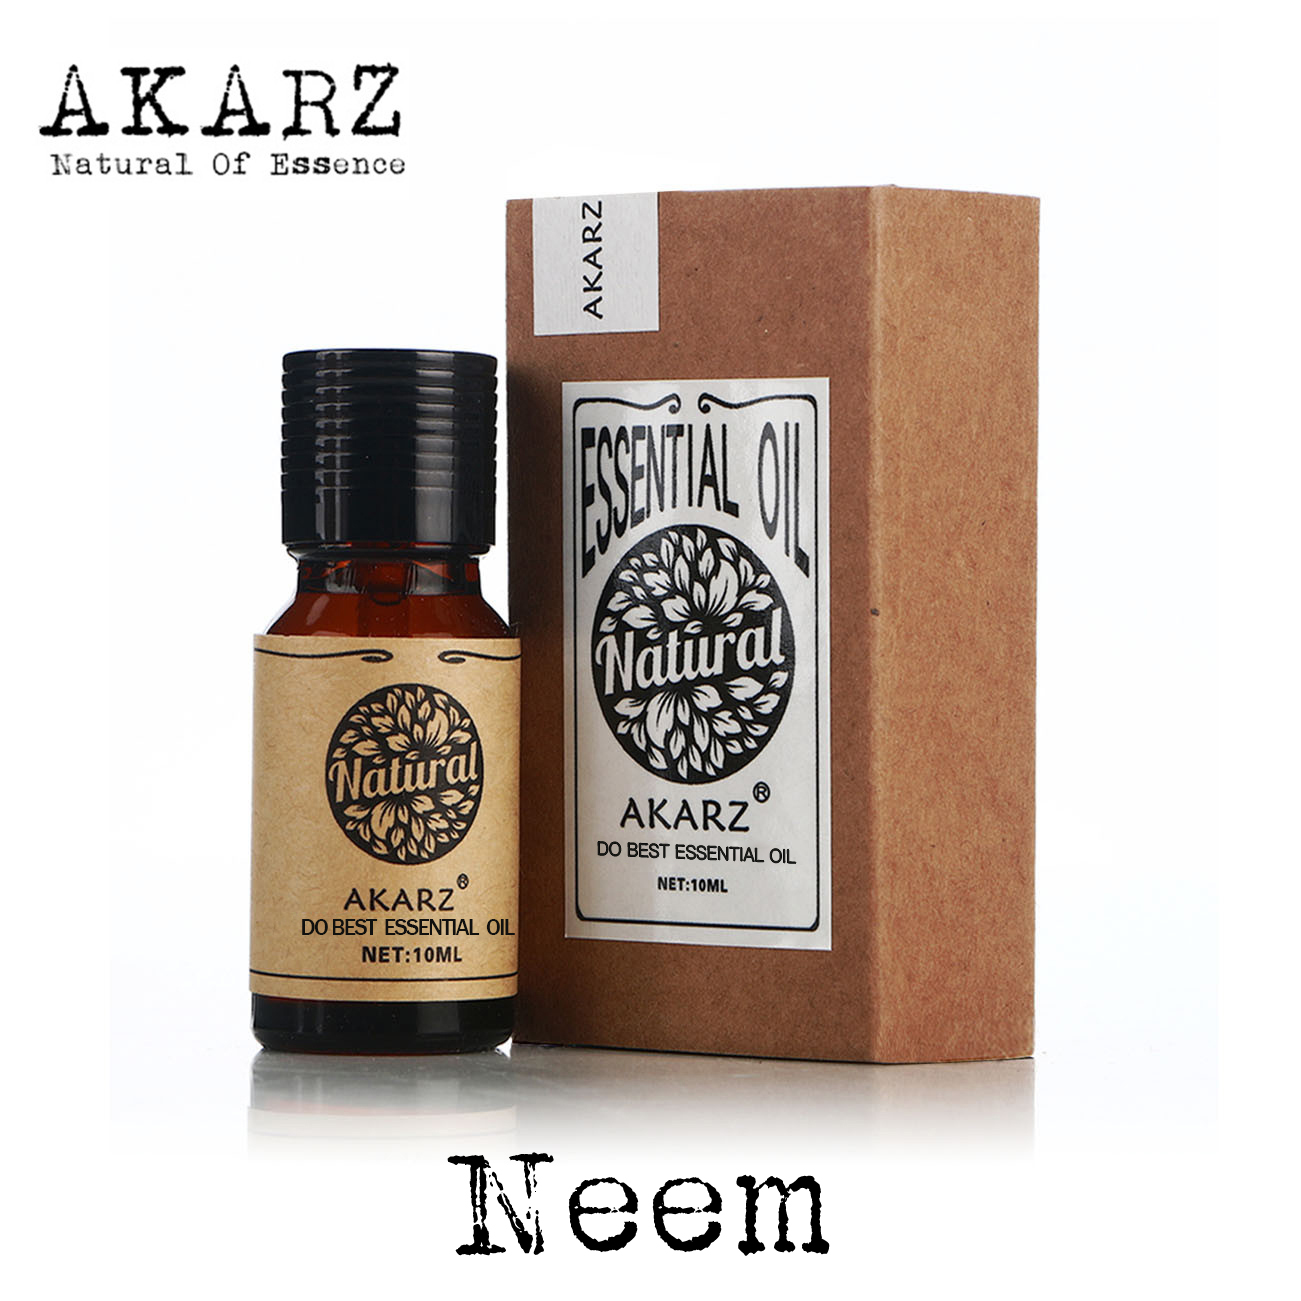 AKARZ Famous brand natural Neem essential oil Insecticidal Disinfection Inhibit the growth of insect pests Neem oil image